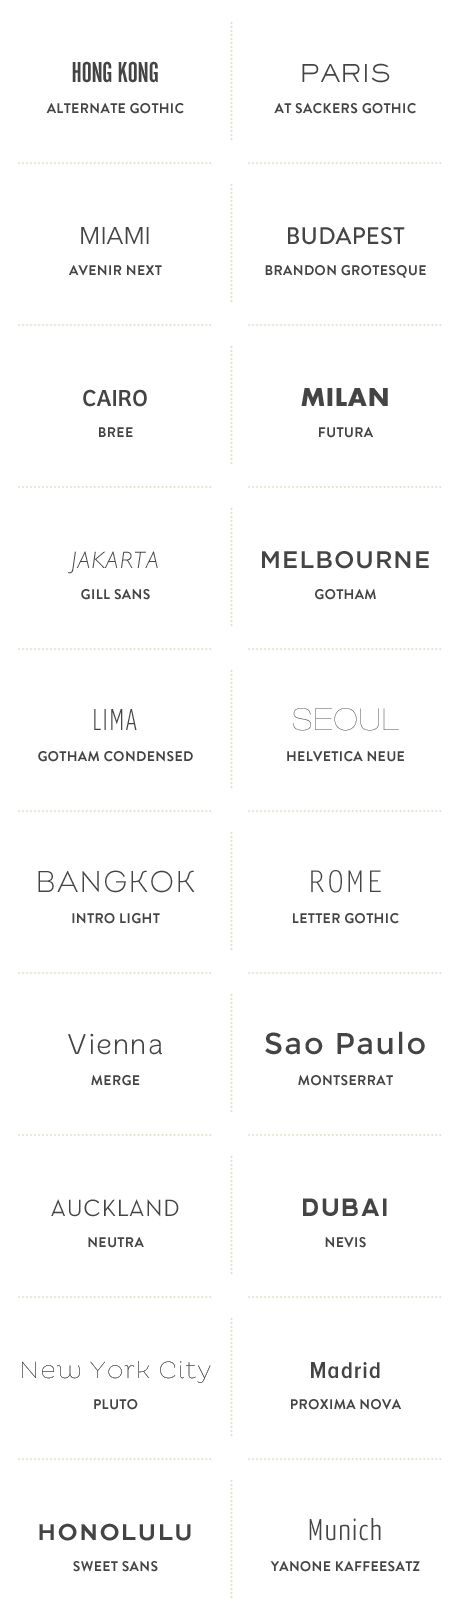 sans serif fonts- absolutely love Miami, Melbourne, and Jakarta! Will be using for my website :)